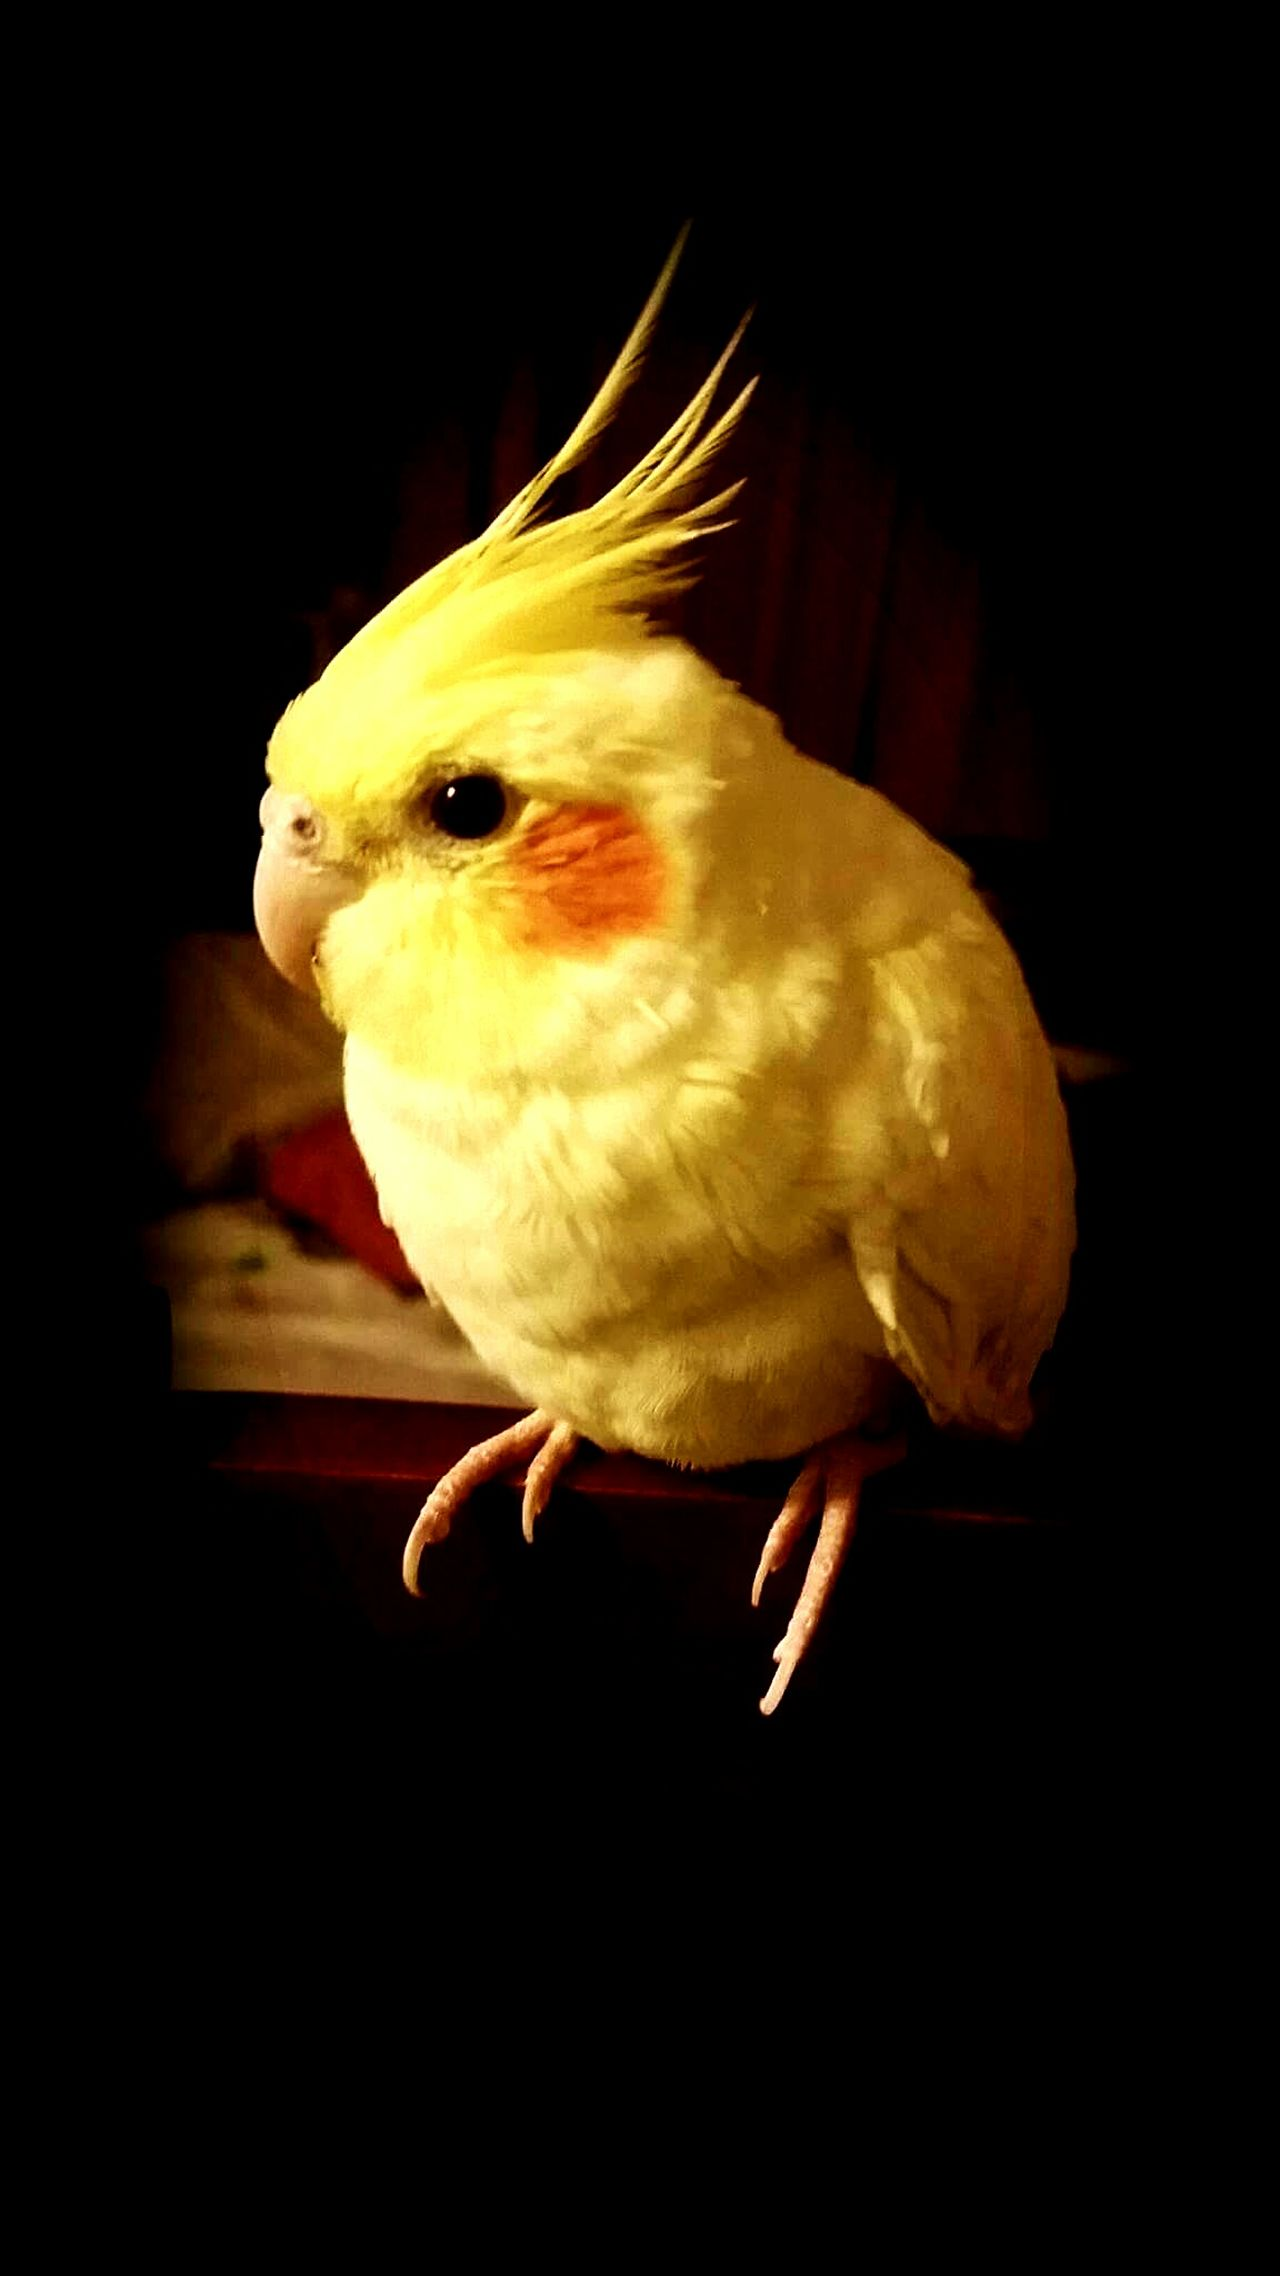 Cockatiel Cockatiel Cockatiels Cockatielsofinstagram Cockatiel Love Pikachu Bird One Animal Animal Pets Animal Body Part Domestic Animals No People Animal Themes Indoors  Close-up Yellow Bird Spring Has Arrived Beauty In Nature